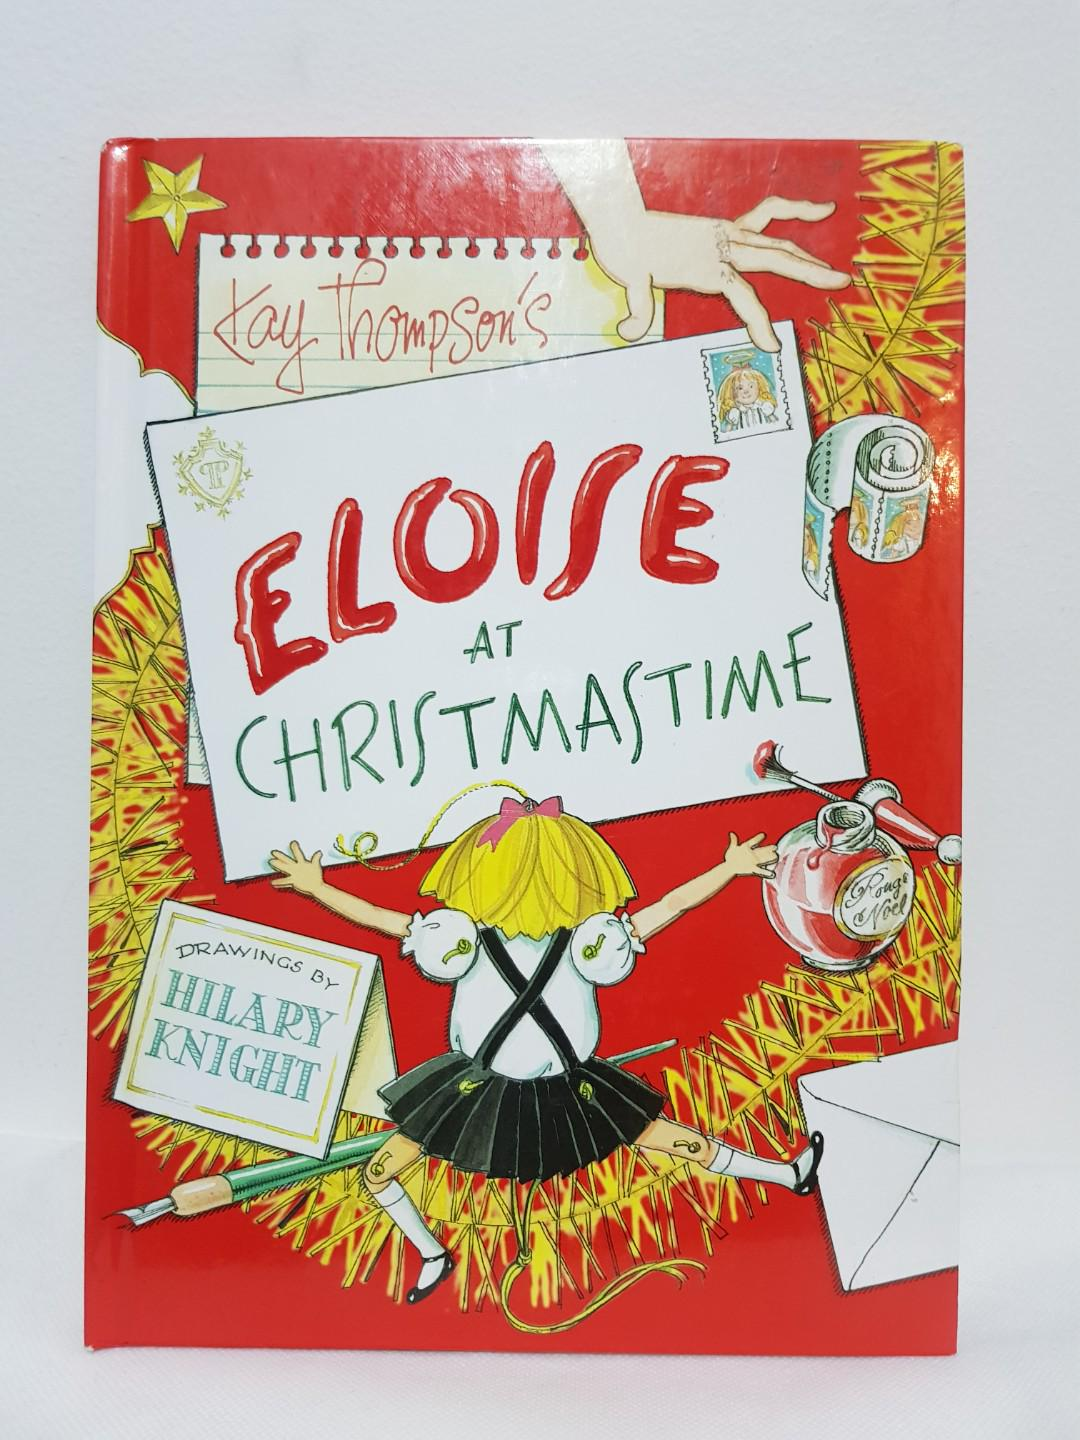 Eloise At Christmas.Eloise At Christmastime Hardbound Color On Carousell